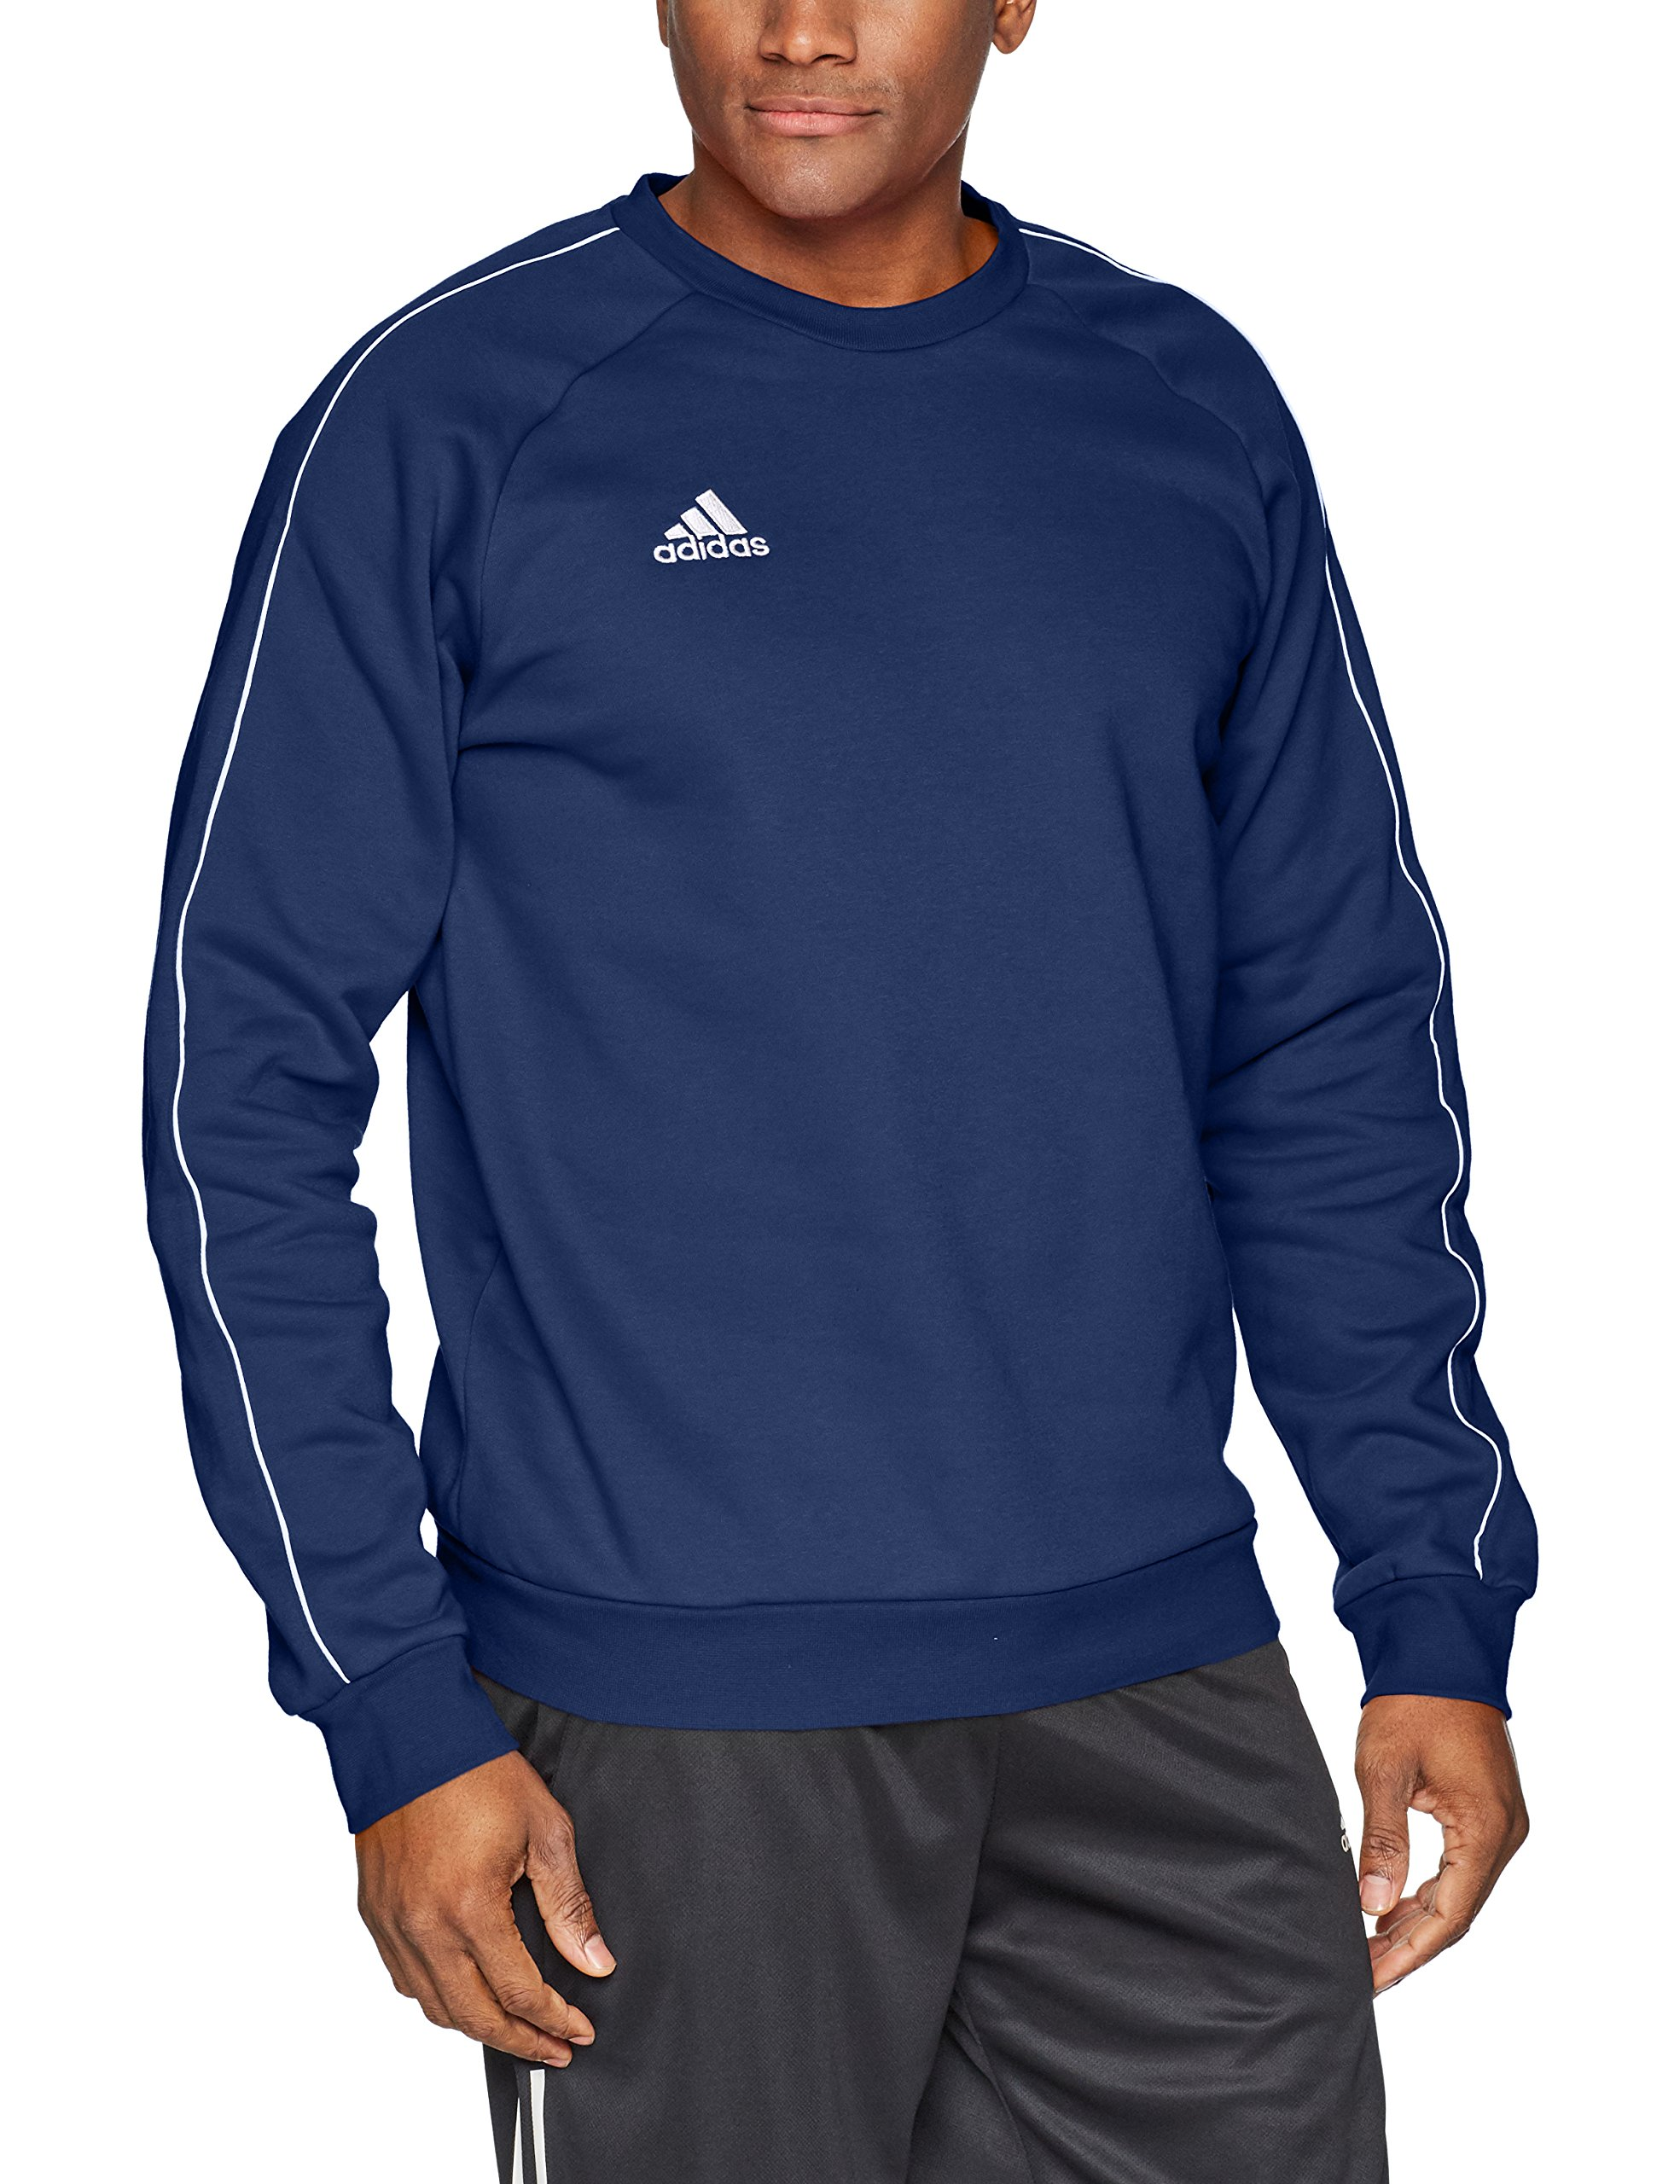 adidas Men's Core 18 Soccer Sweatshirt, Dark Blue/White, XX-Large by adidas